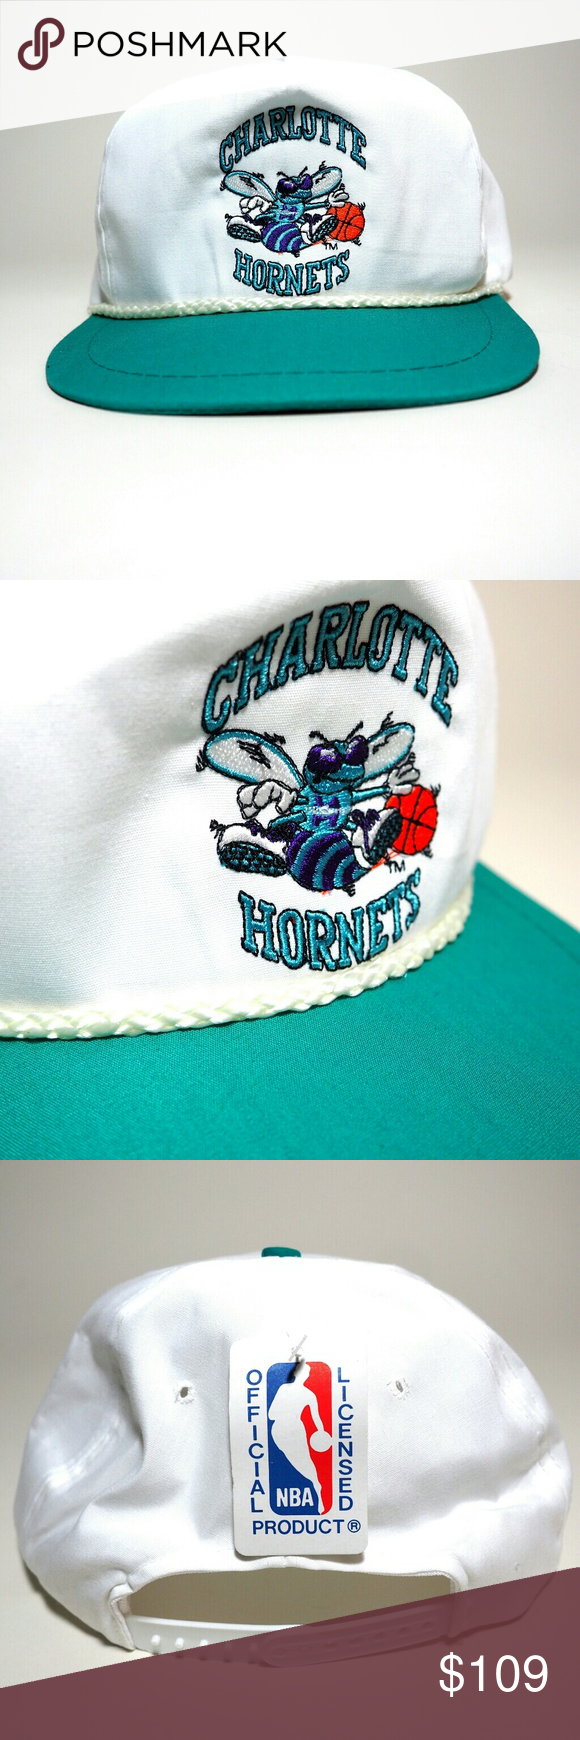 3f11cce97da Rare Vintage U.I.I. Charlotte Hornets Snapback This hat is New With Tags It  is U.I.I. Brand from the 80s   90s Official NBA Merchandise in Great  Condition ...